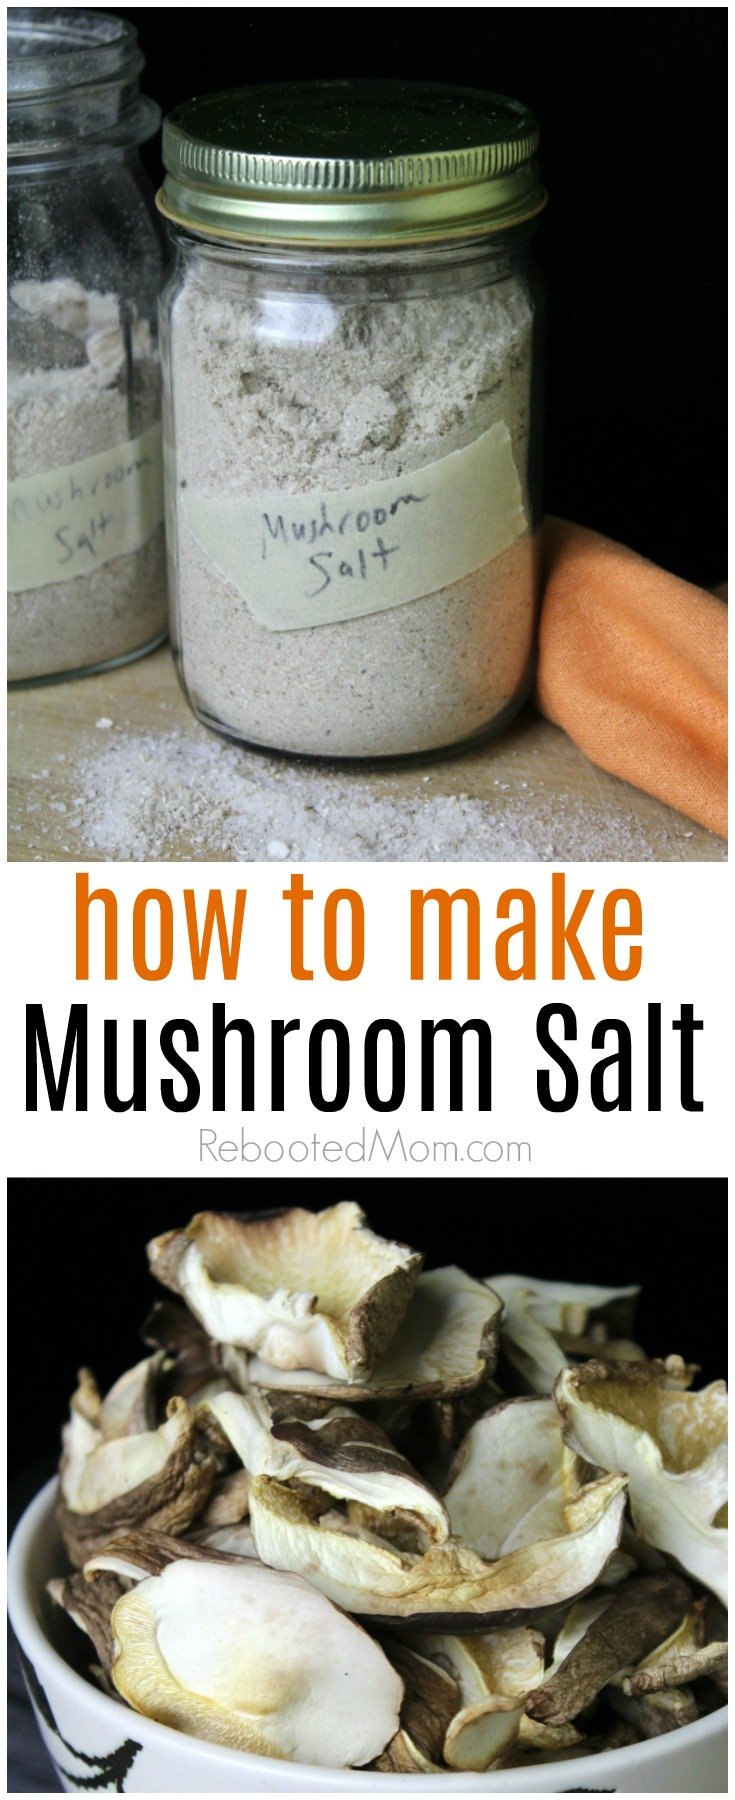 This mushroom salt is simple to make and delicious on everything from roasted veggies to steak, chicken and so much more!  #veggiesalt #mushroom #salt #spices #seasoning